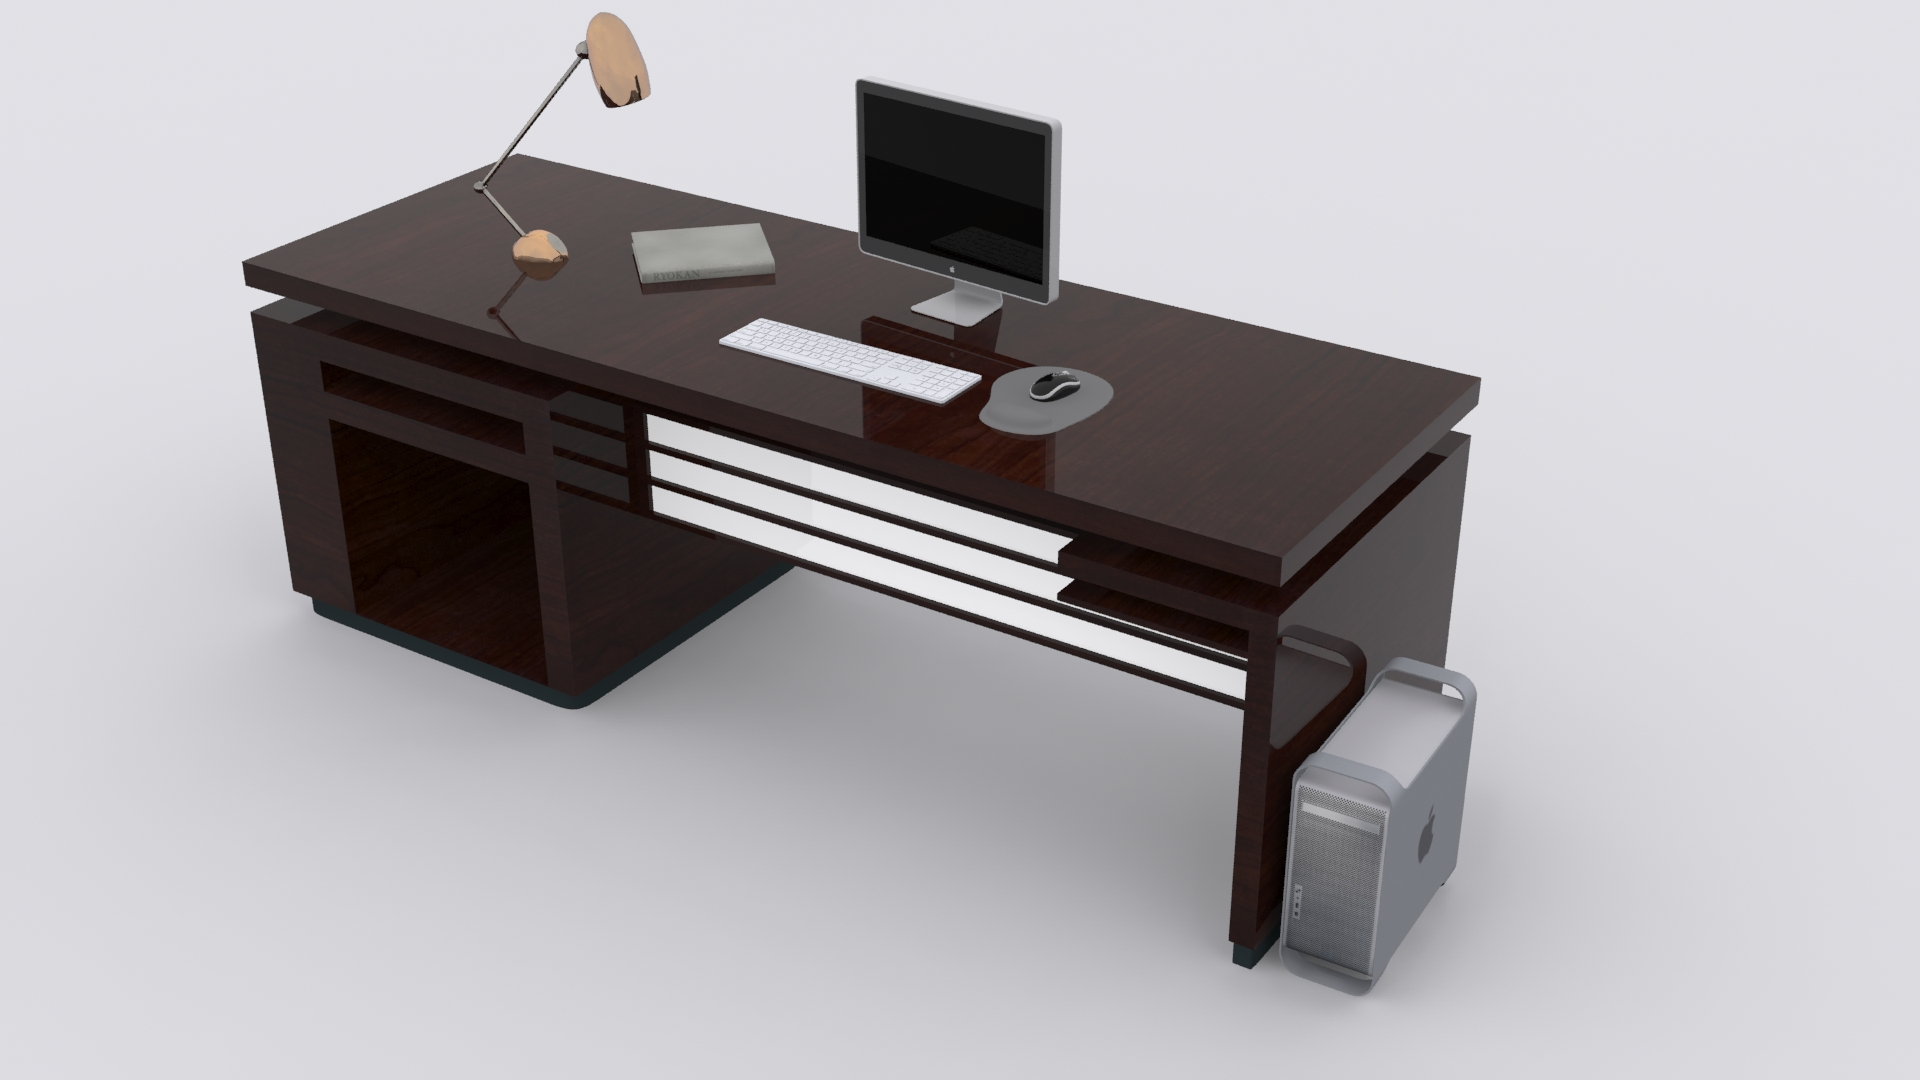 3d model computer desk vr ar low poly max fbx